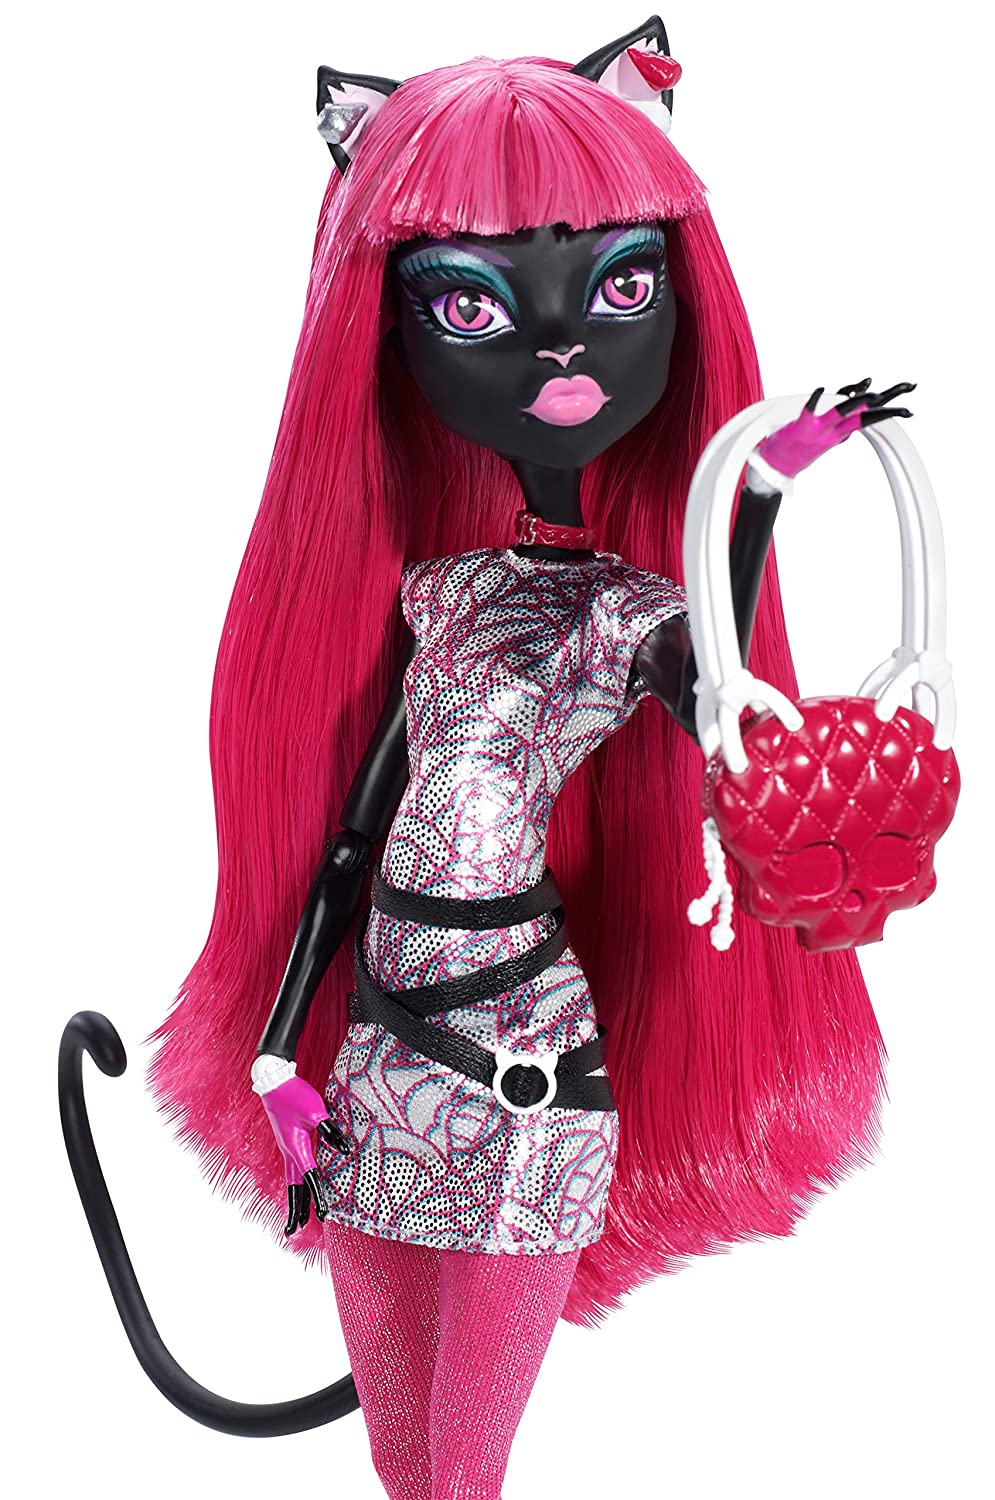 All Monster High Dolls